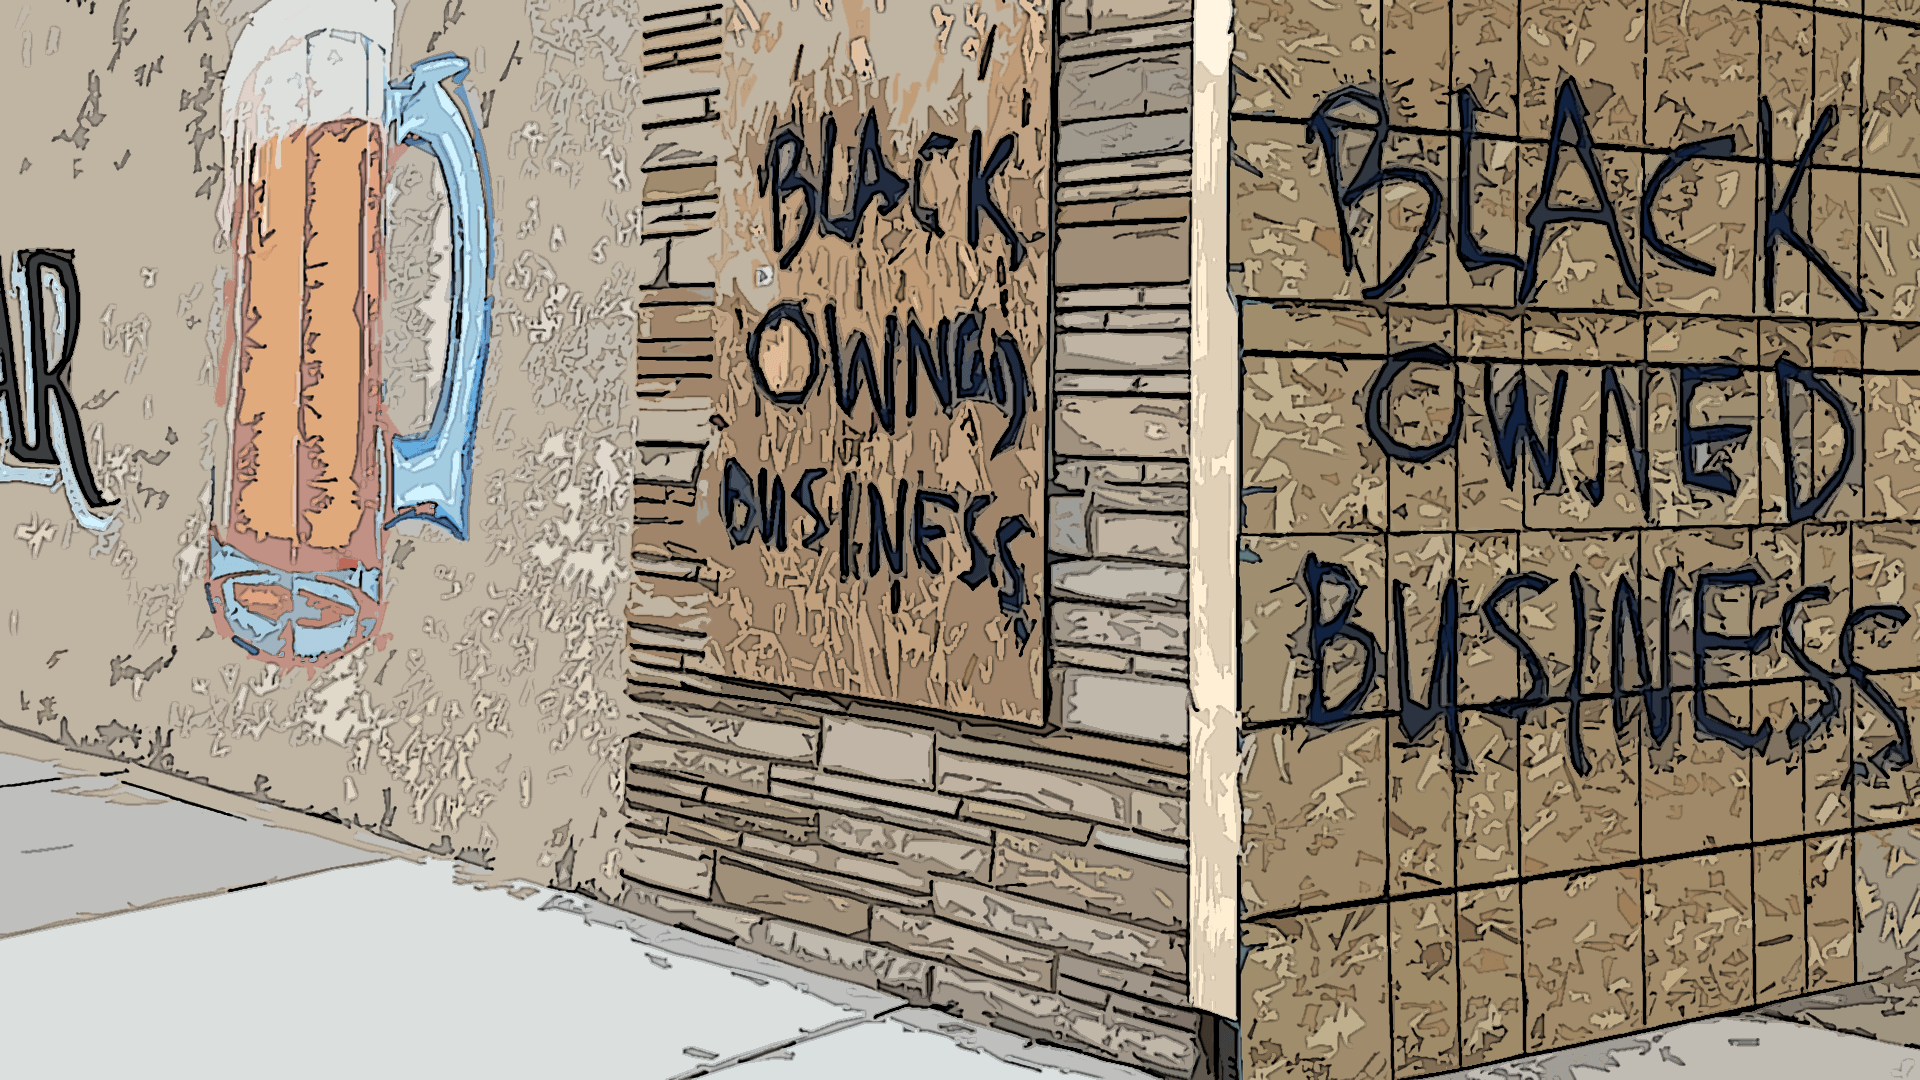 Boarded up business.